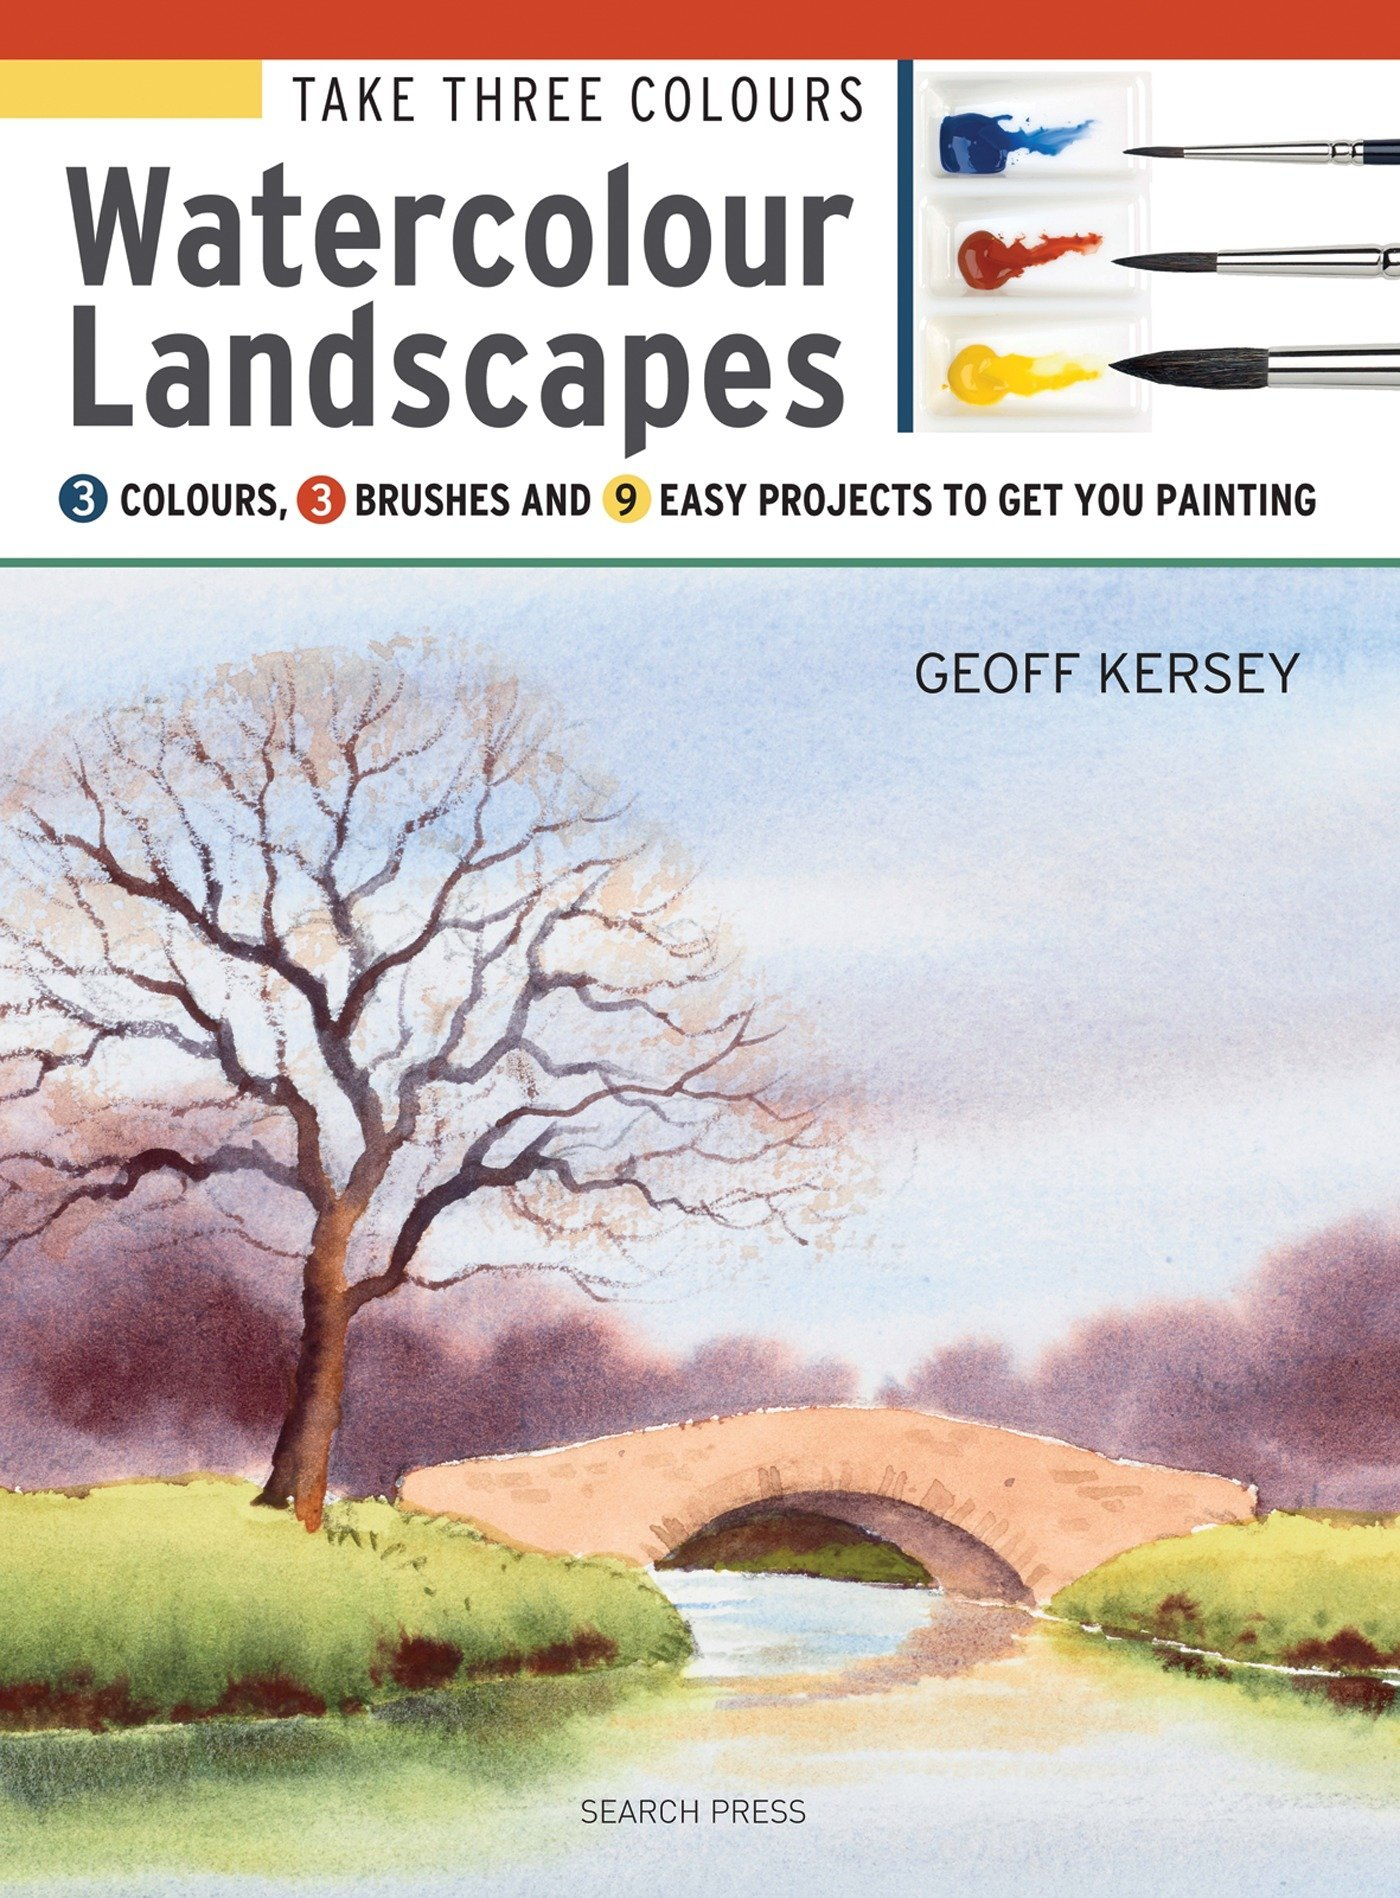 Download Take Three Colours: Watercolour Landscapes: Start to paint with 3 colours, 3 brushes and 9 easy projects pdf